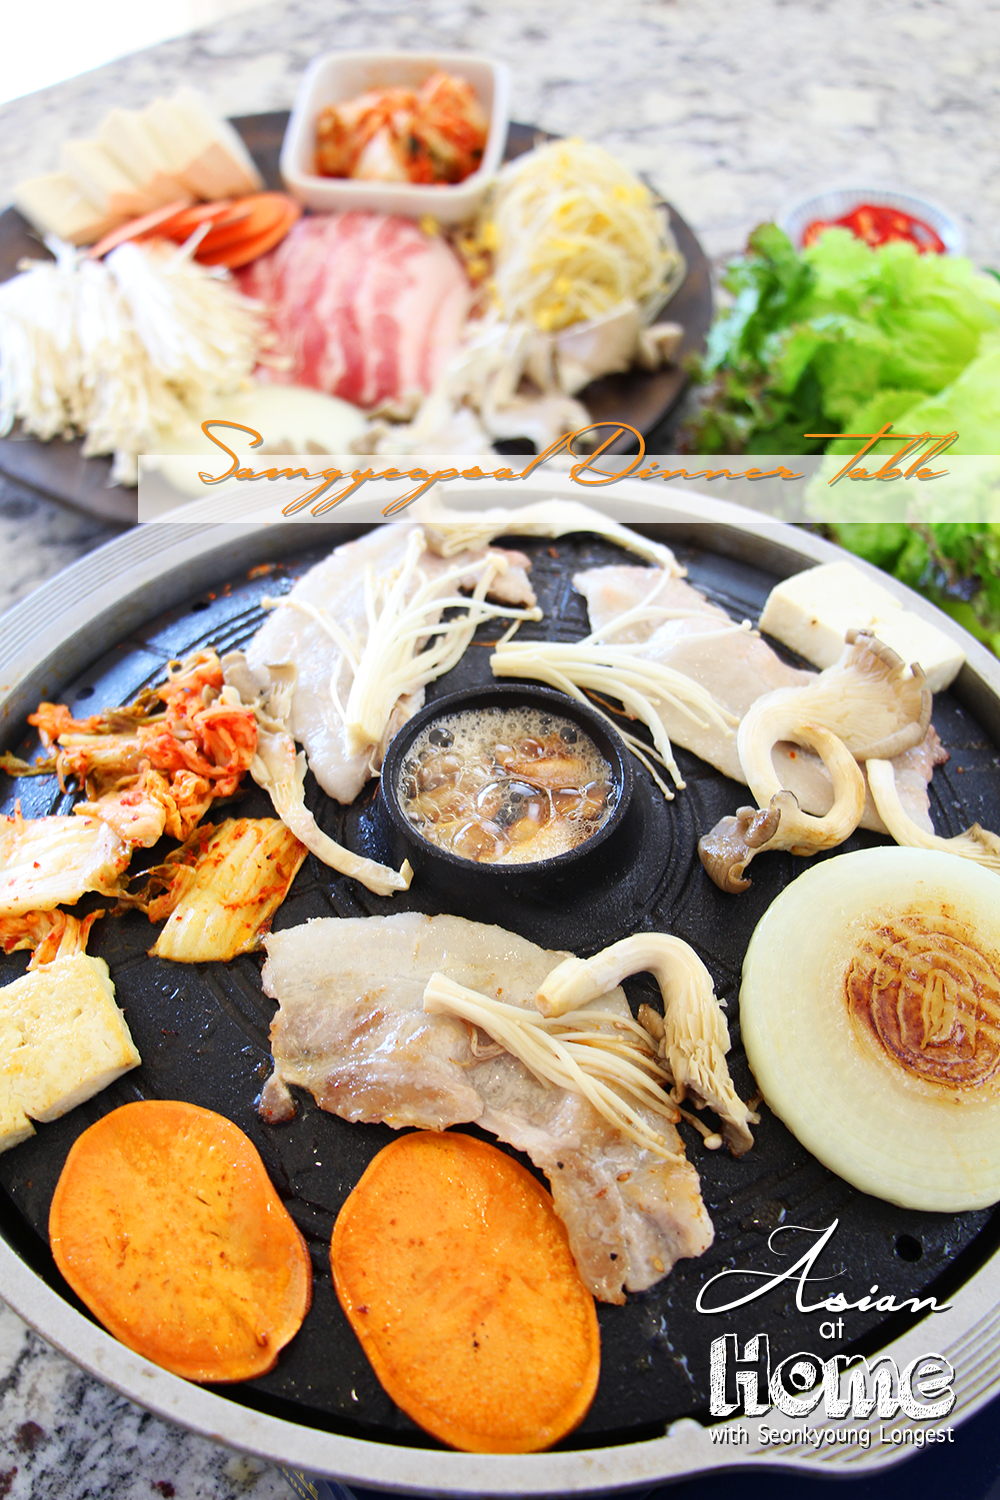 Samgyeopsal dinner table recipe video seonkyoung longest forumfinder Image collections